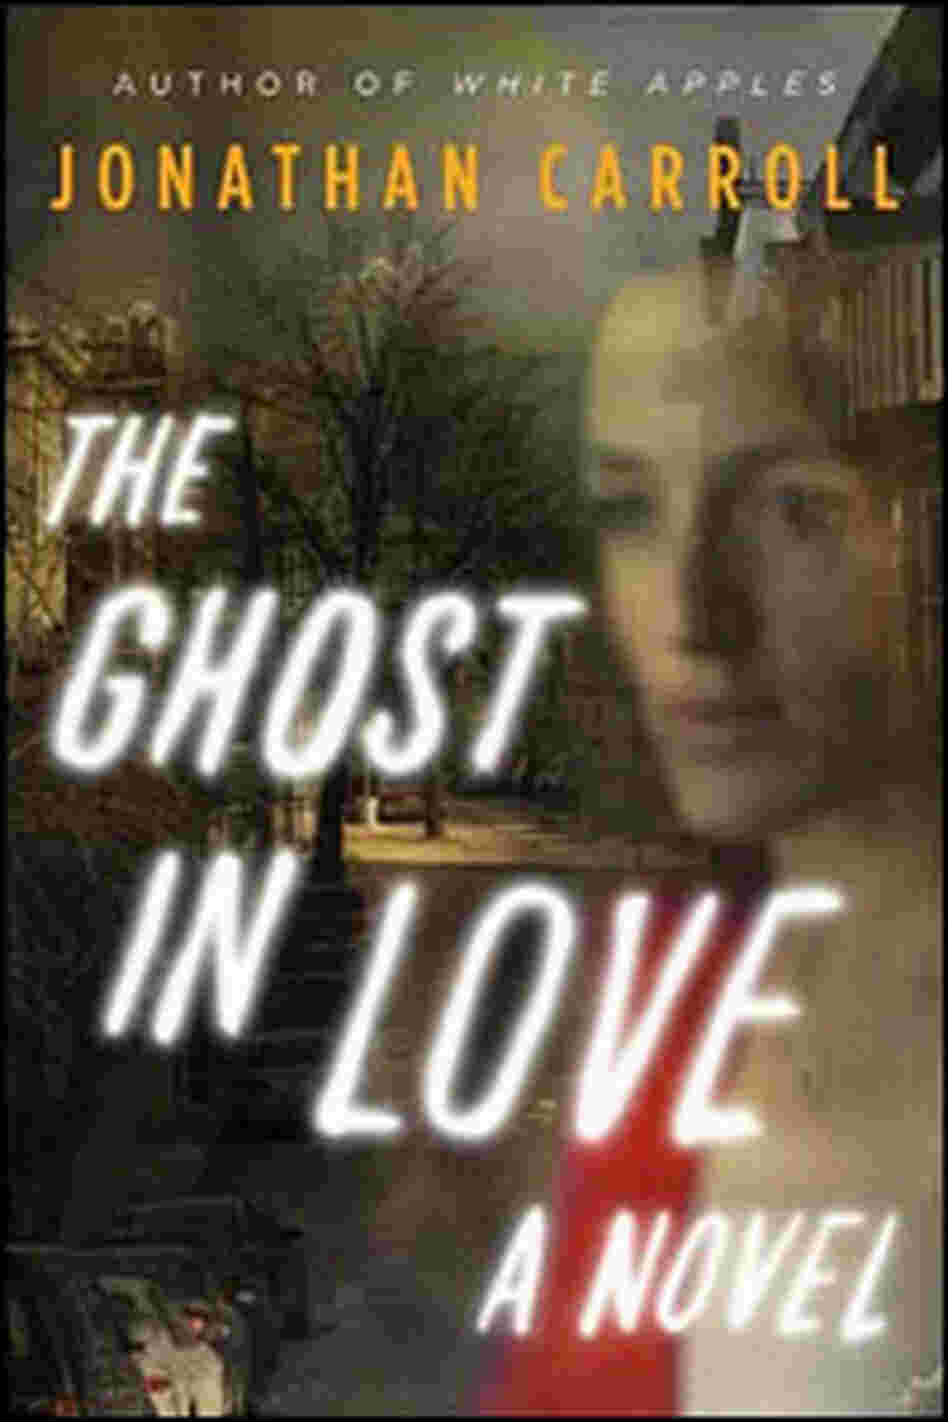 Jonathan Carroll's 'The Ghost in Love'